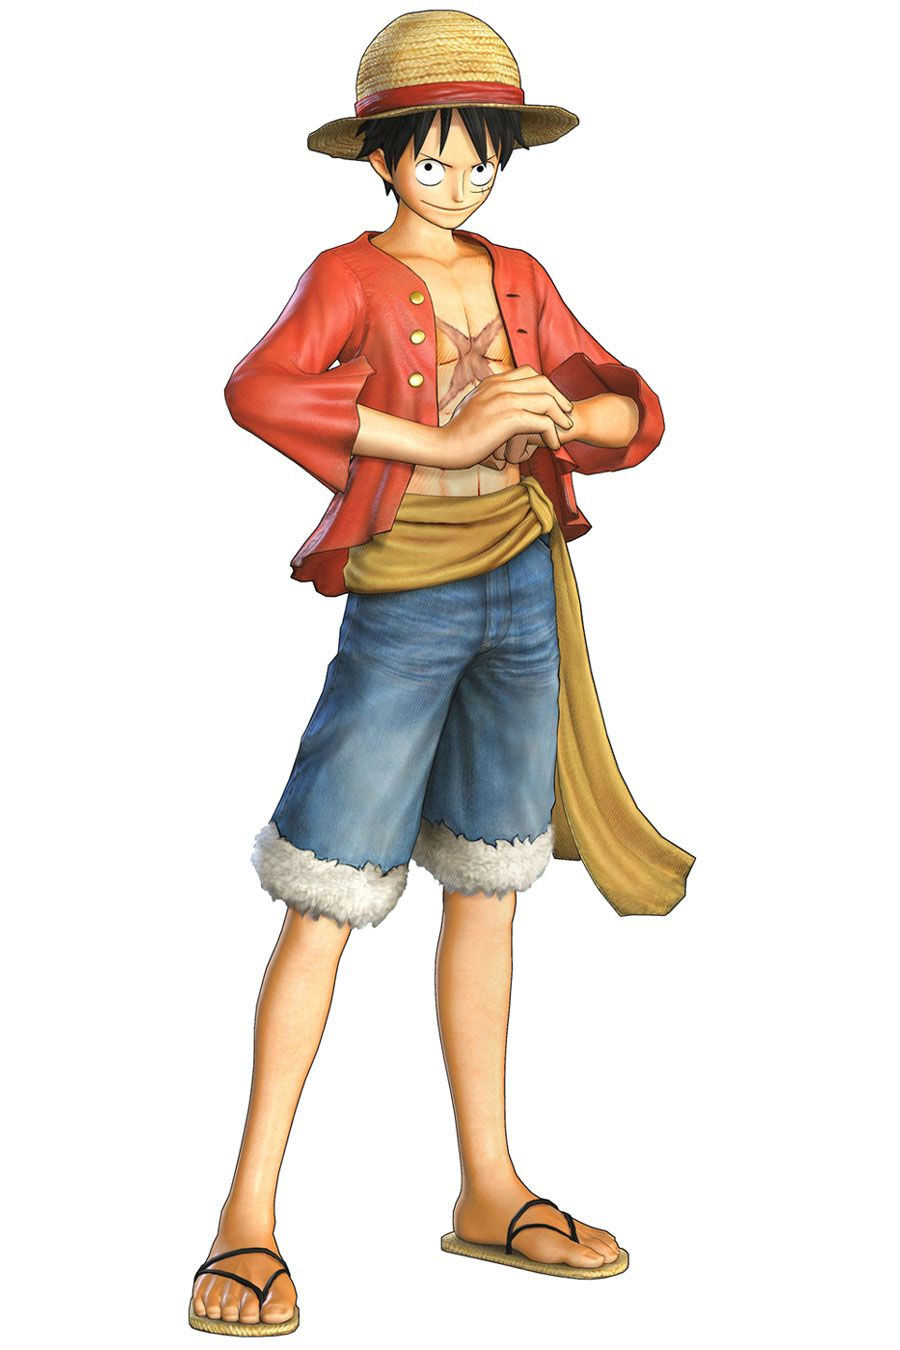 Monkey d luffy characters art one piece pirate